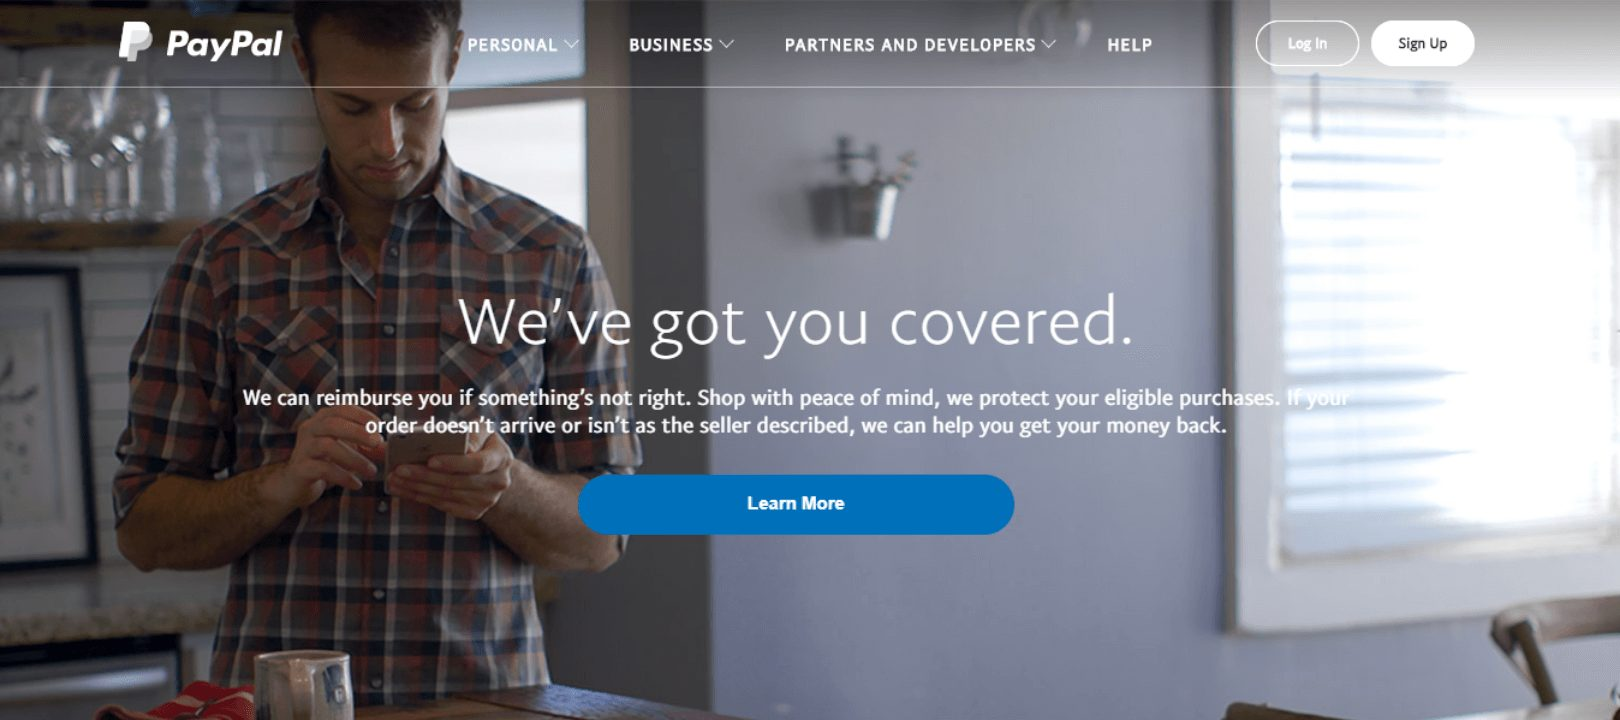 PayPal Hope page screen